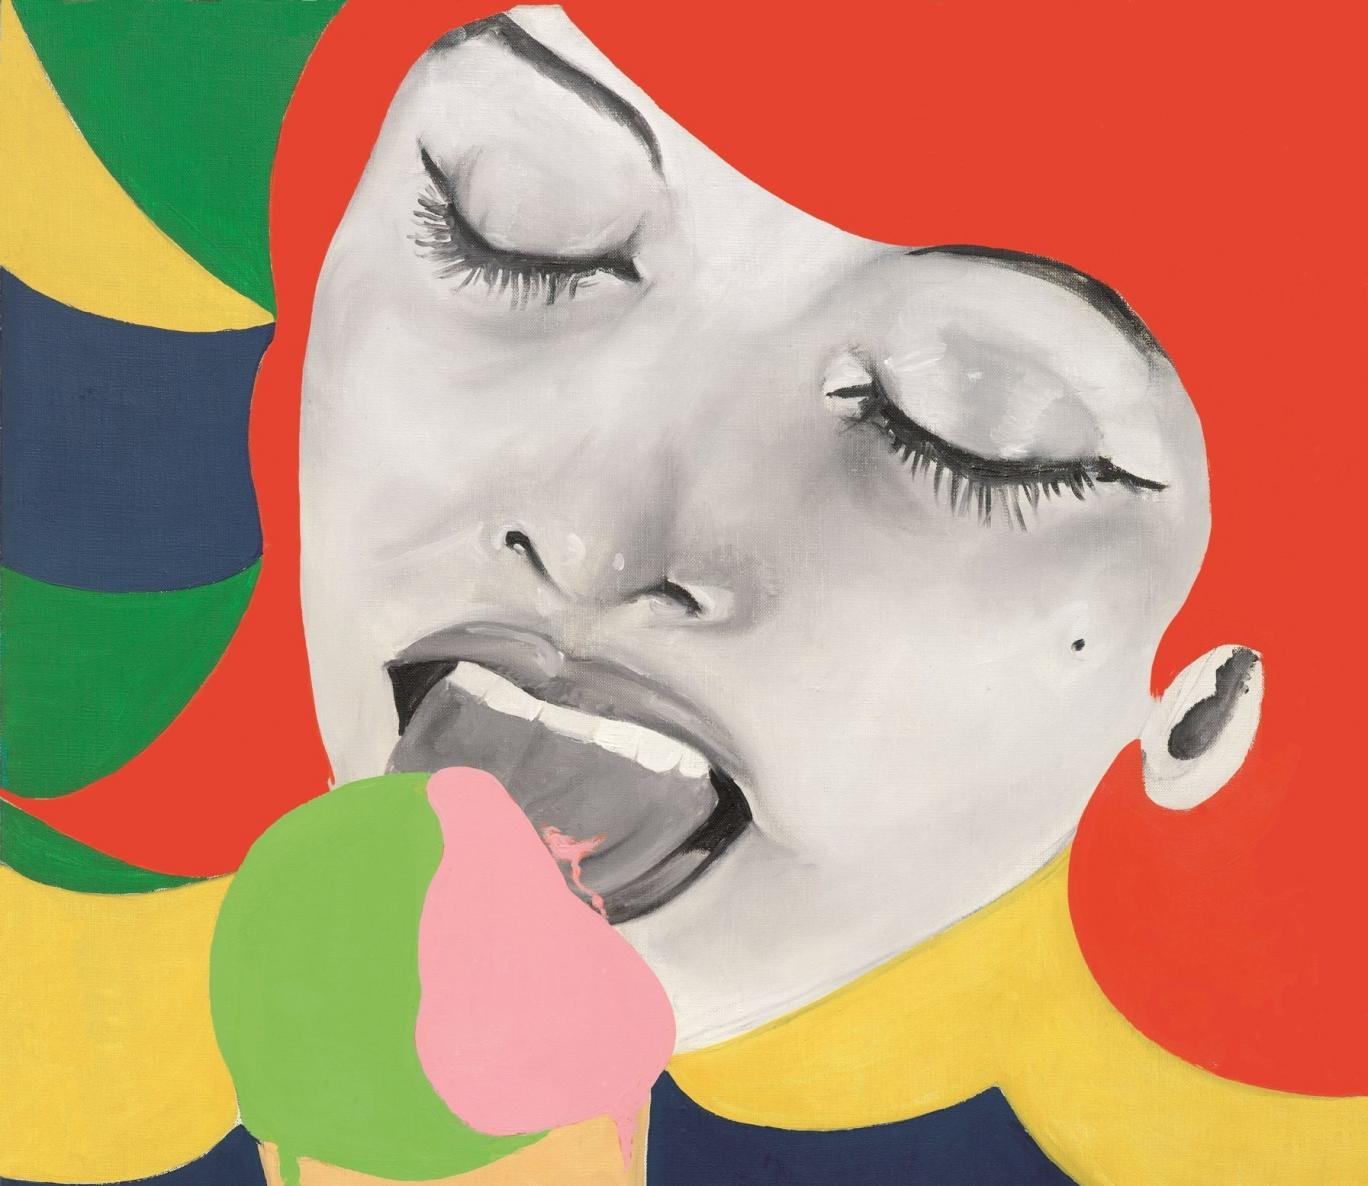 1960s pop art piece gets censored by facebook